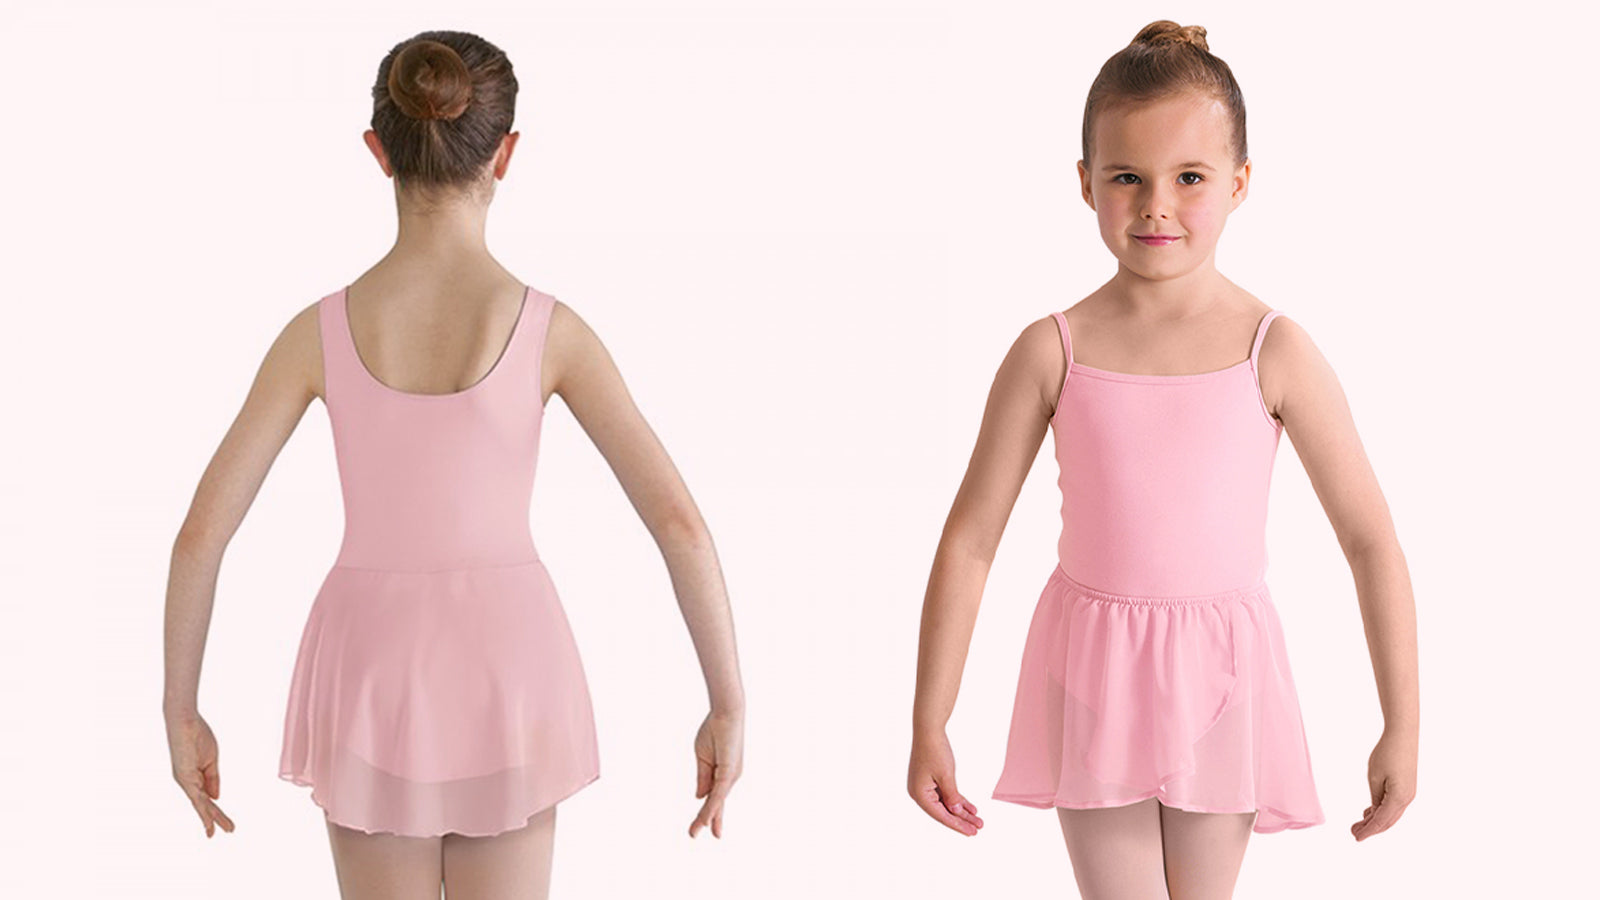 A front and back view of a young dancer wearing a pink skirted BLOCH leotard